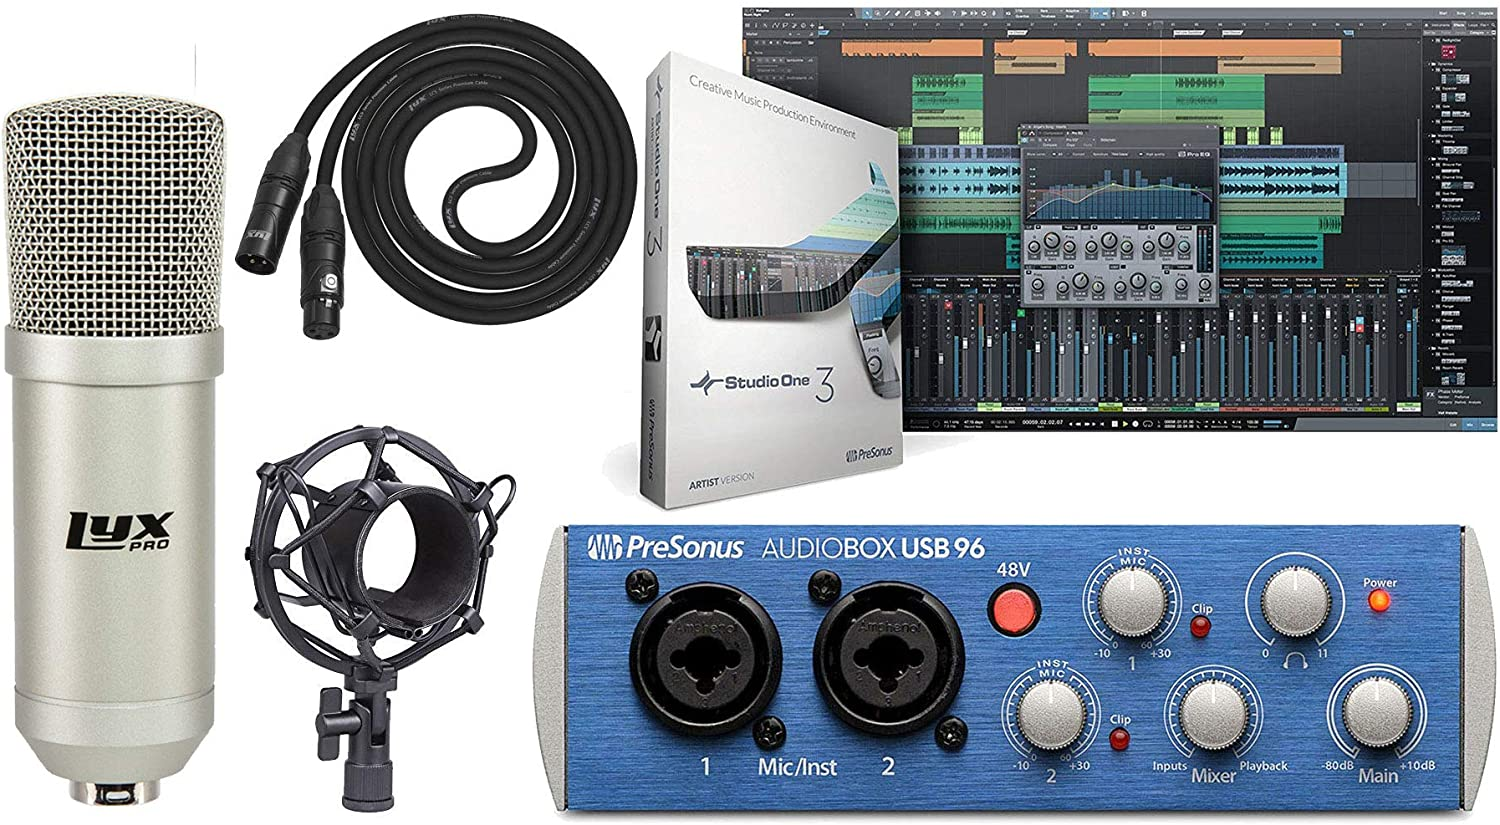 4 Channel USB 2.0 Audio Interface for Recording Microphones and Instruments